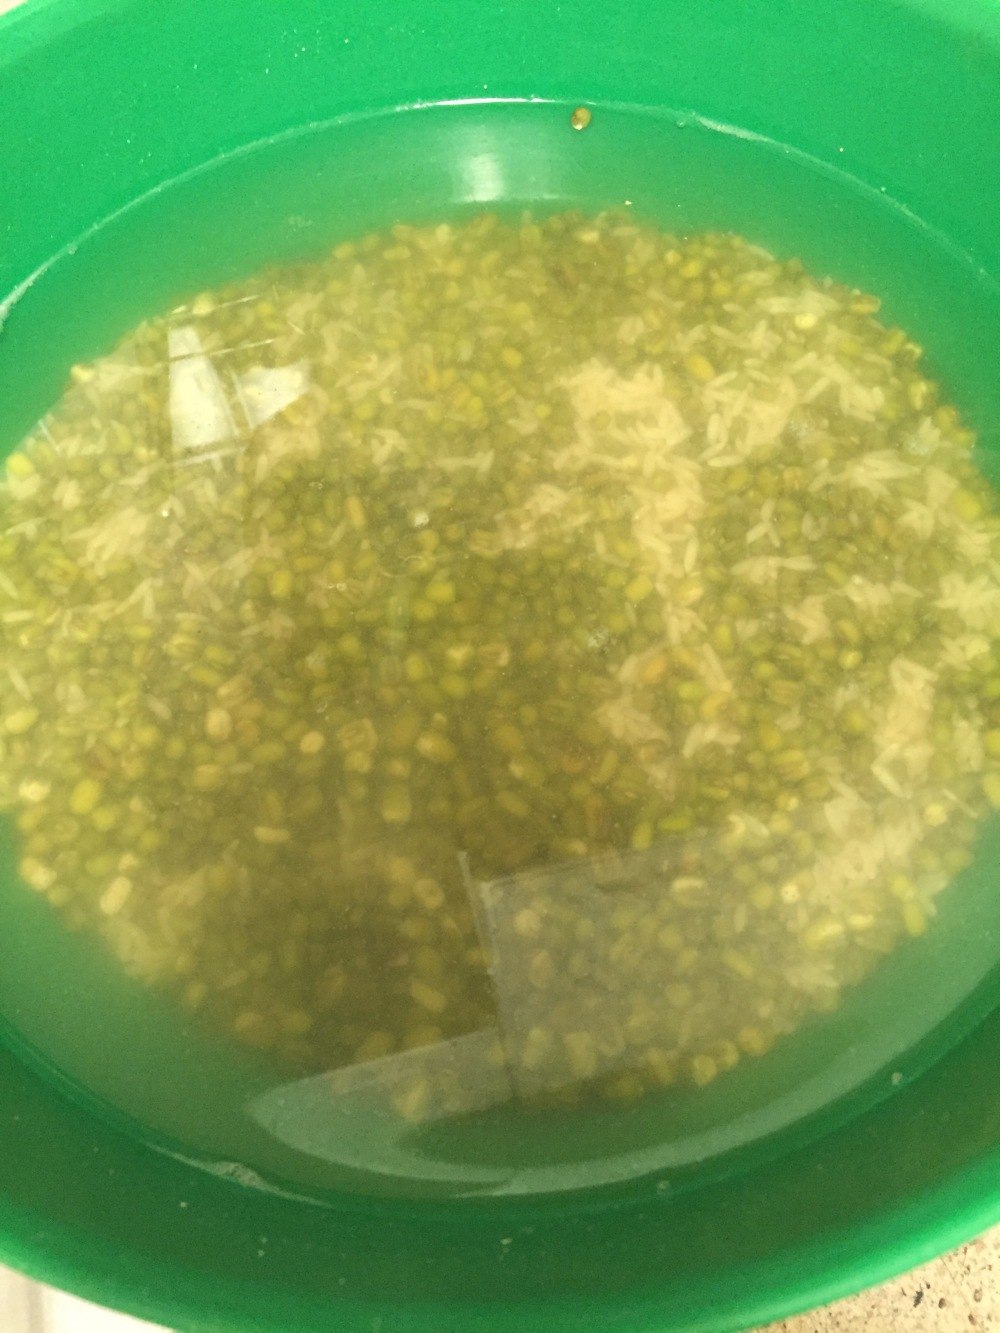 Soaking rice and mung beans